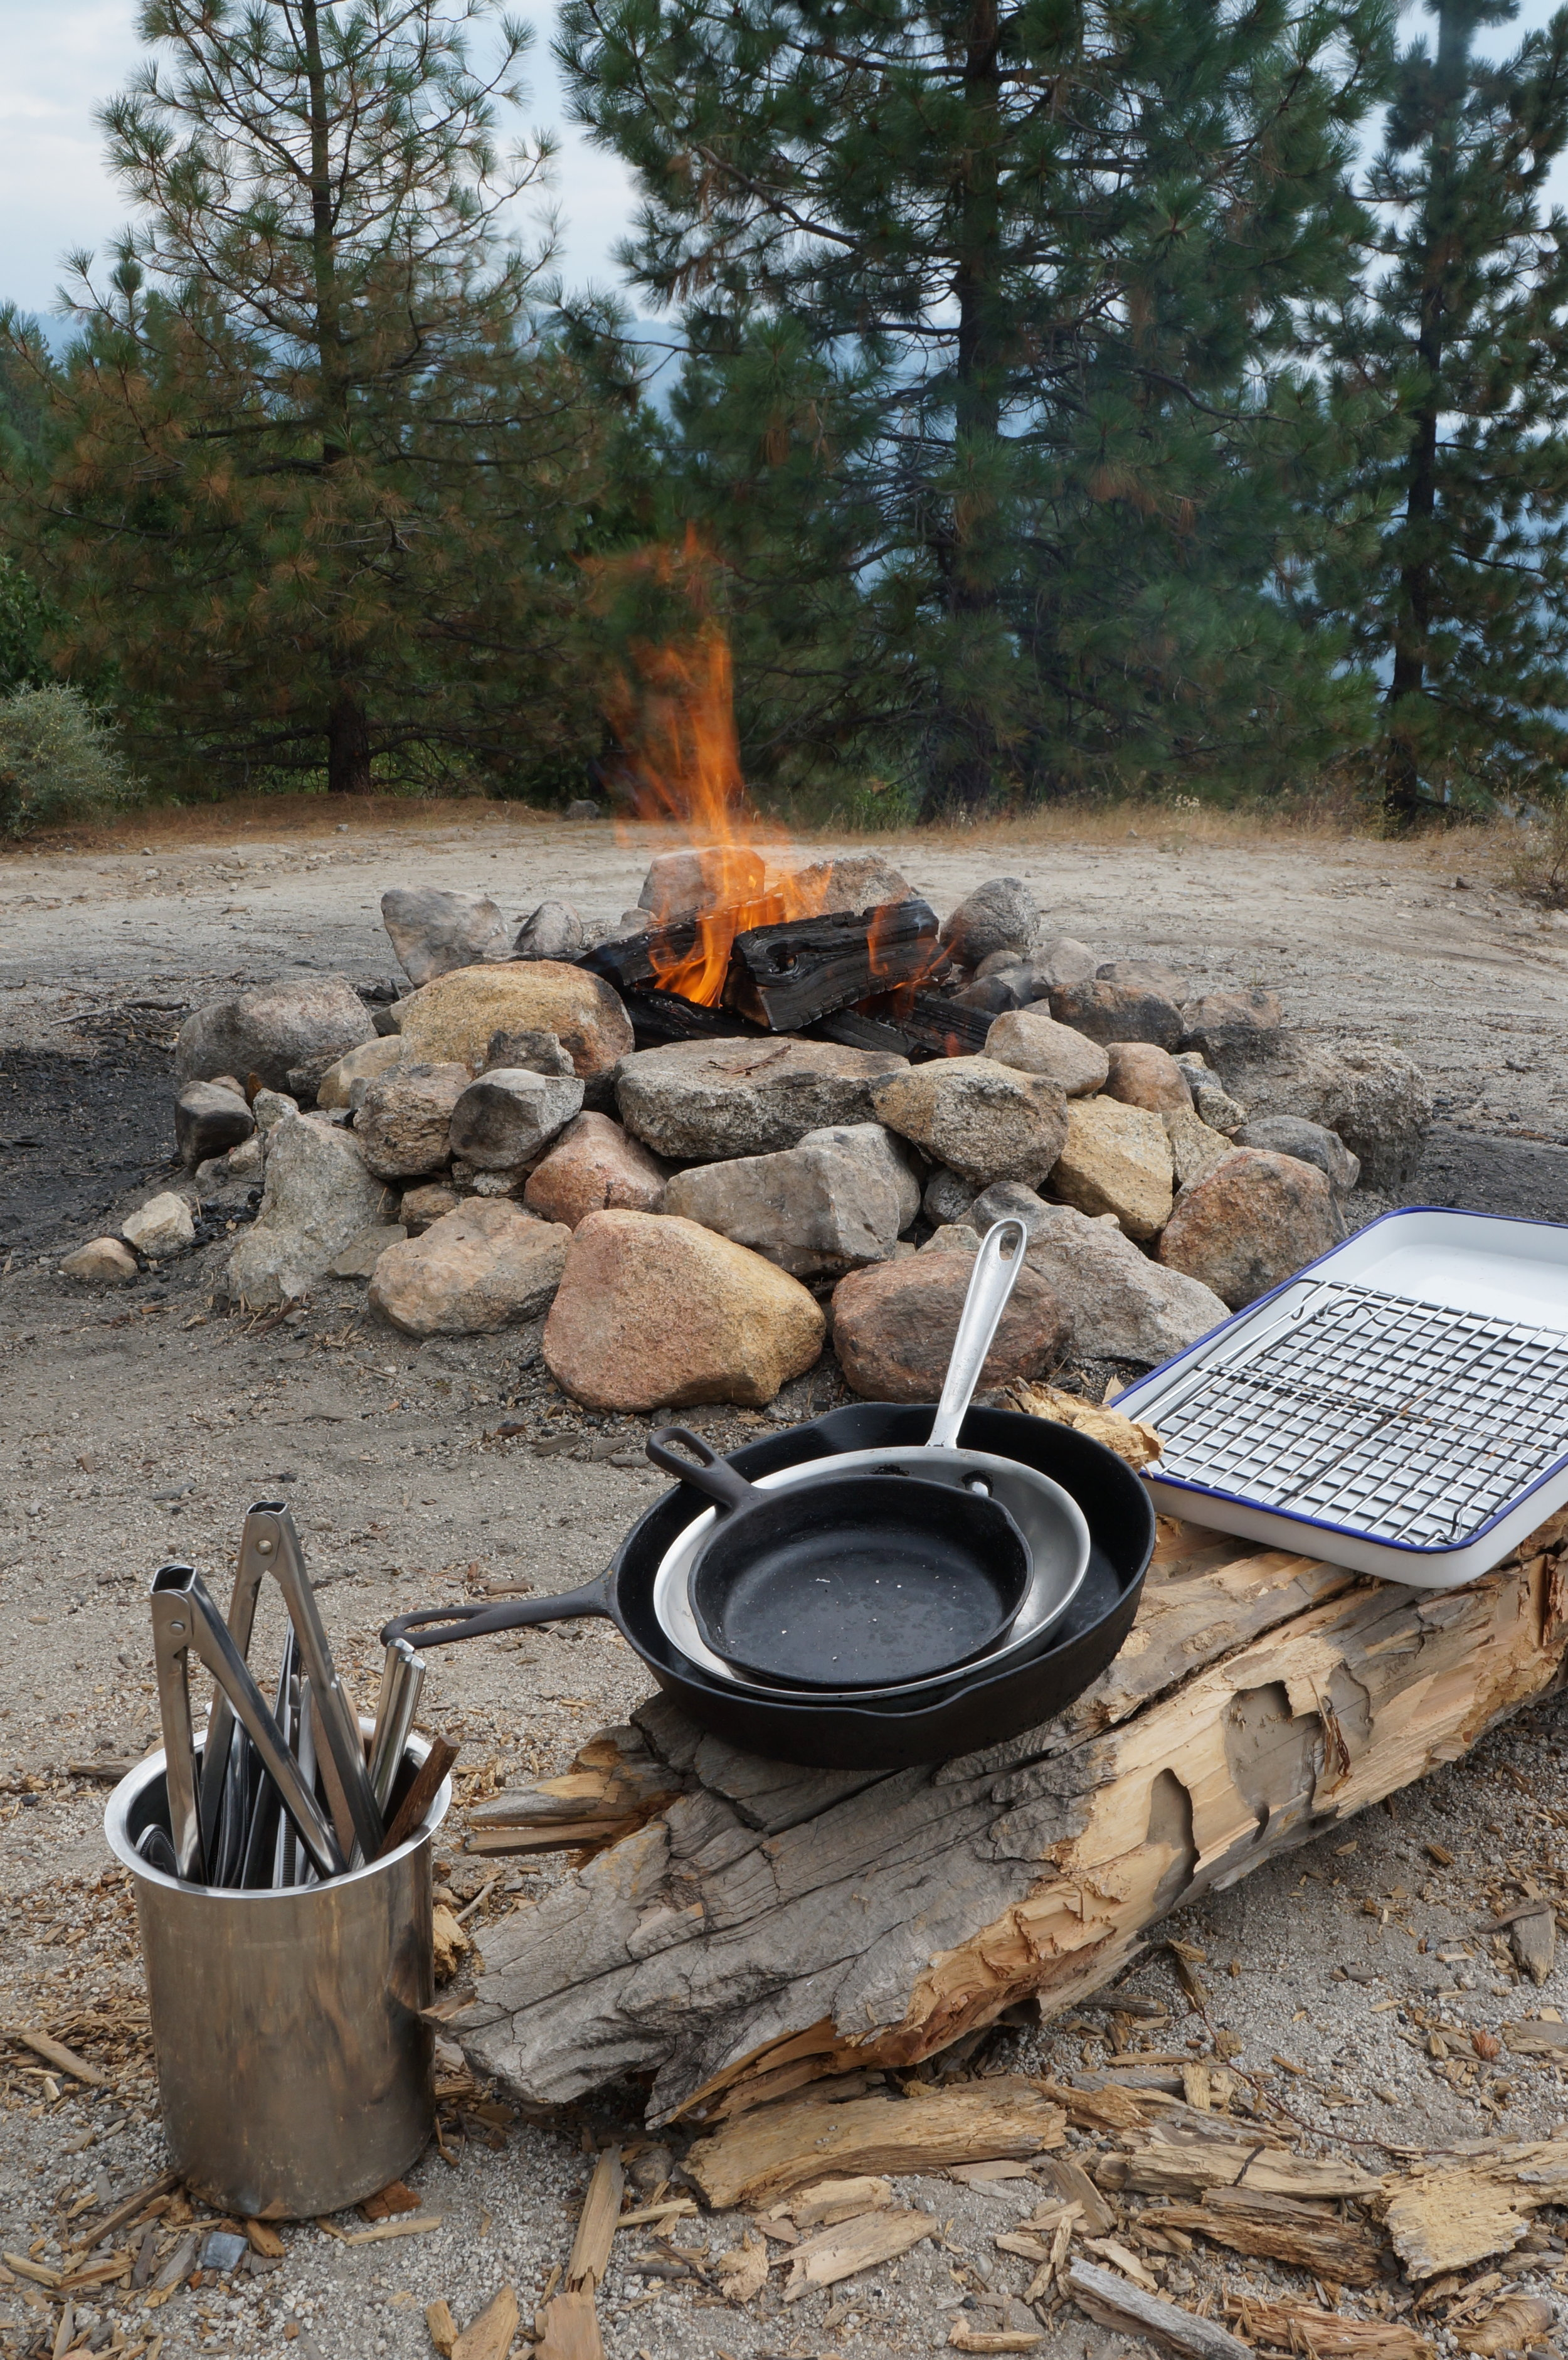 things with which we have a healthy obsession, fire, tongs,cast iron pans